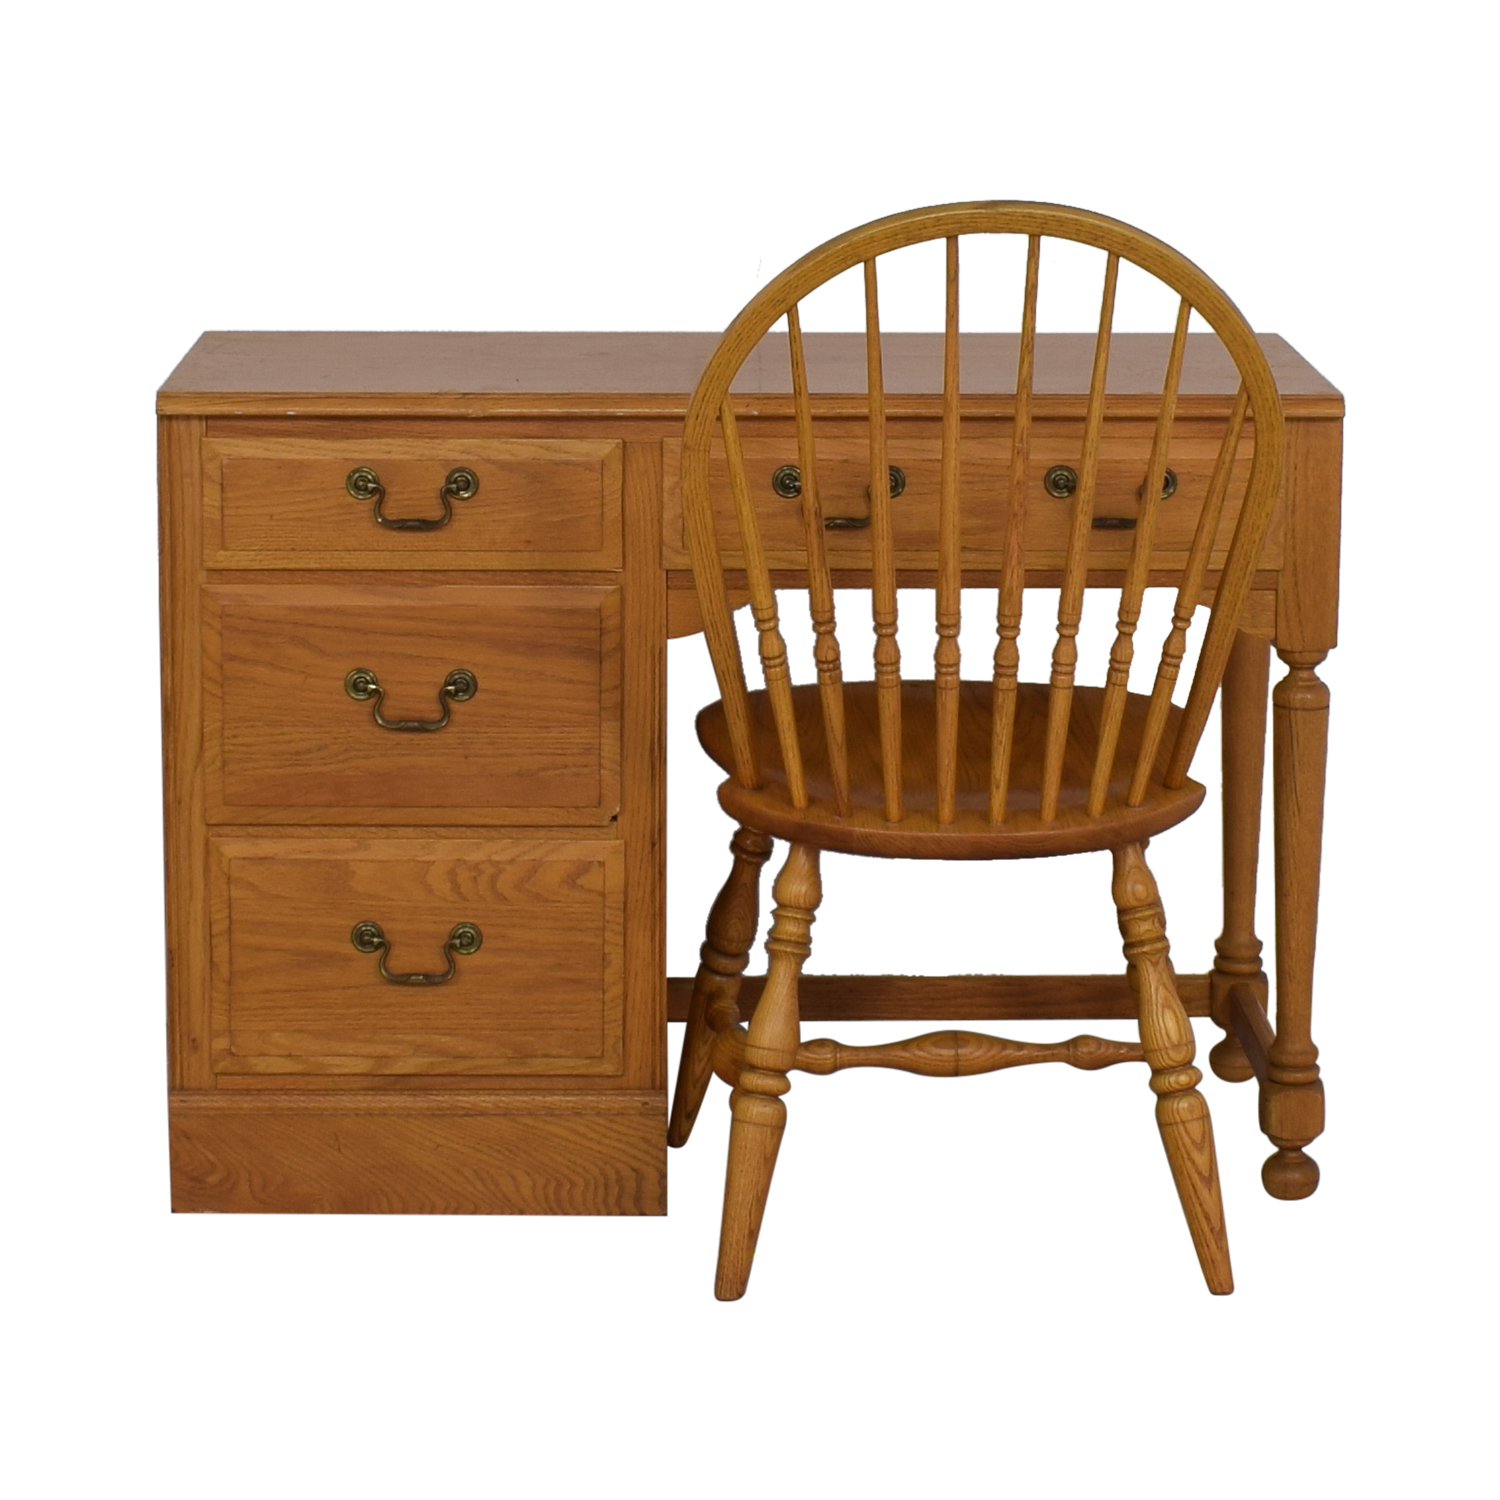 Ethan Allen Ethan Allen Canterbury Chippendale Desk and Chair for sale